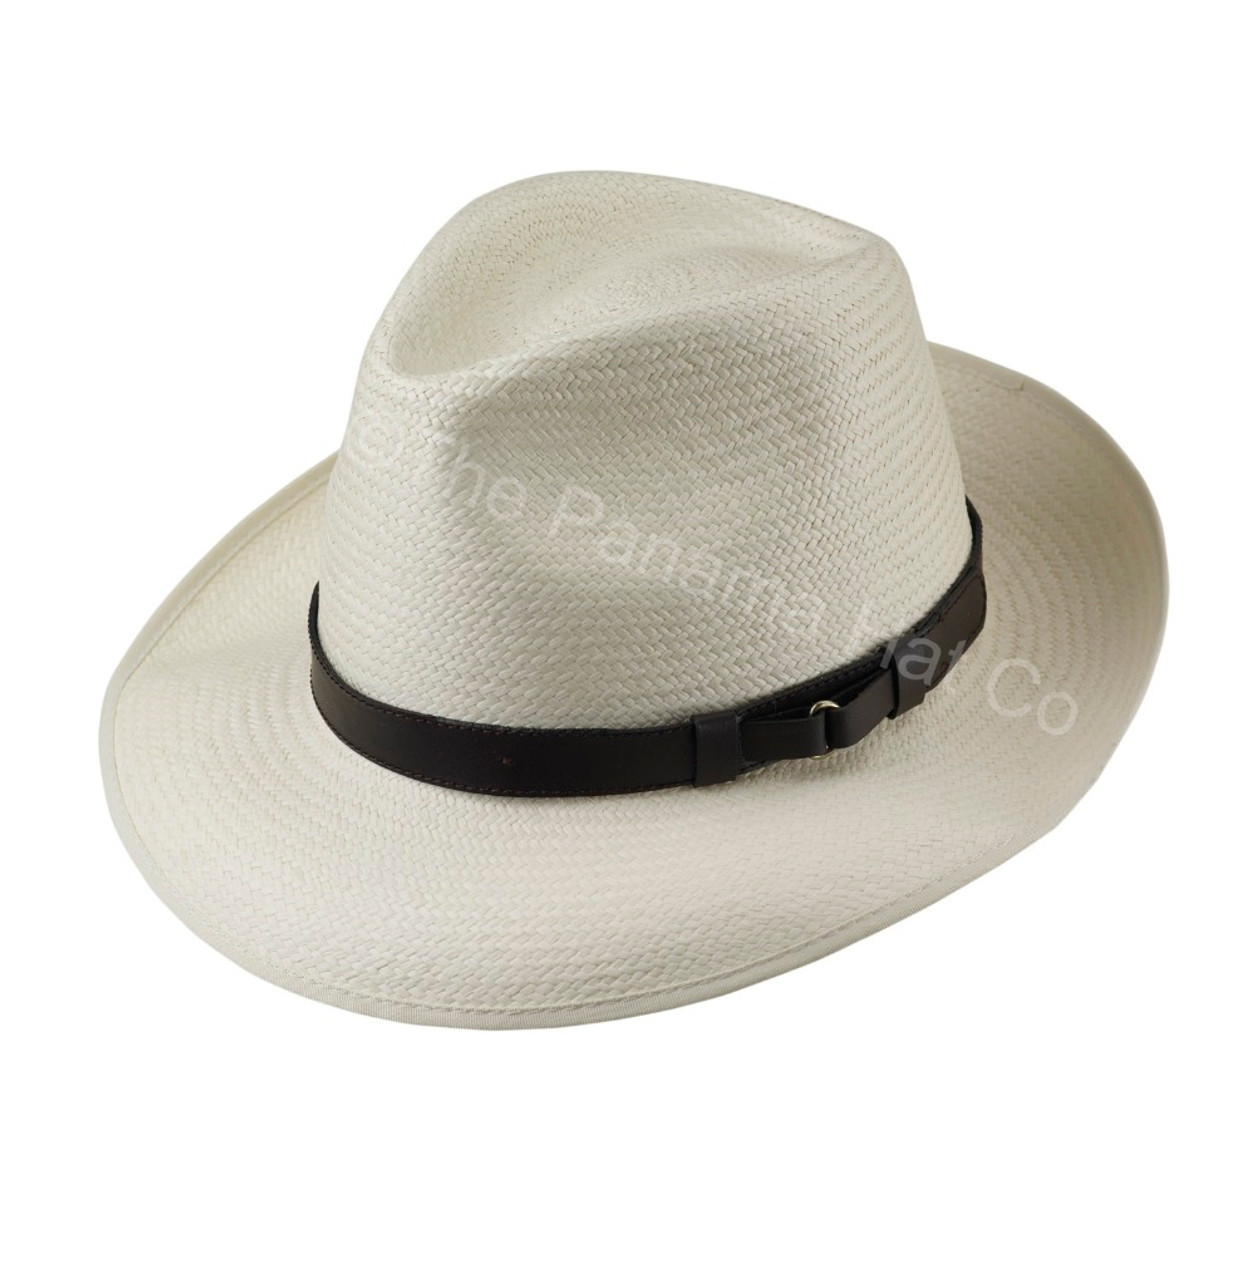 176e5b8bcc0 Snap Brim Trilby panama - Cuenca 3 5 Leather band - The Panama Hat ...